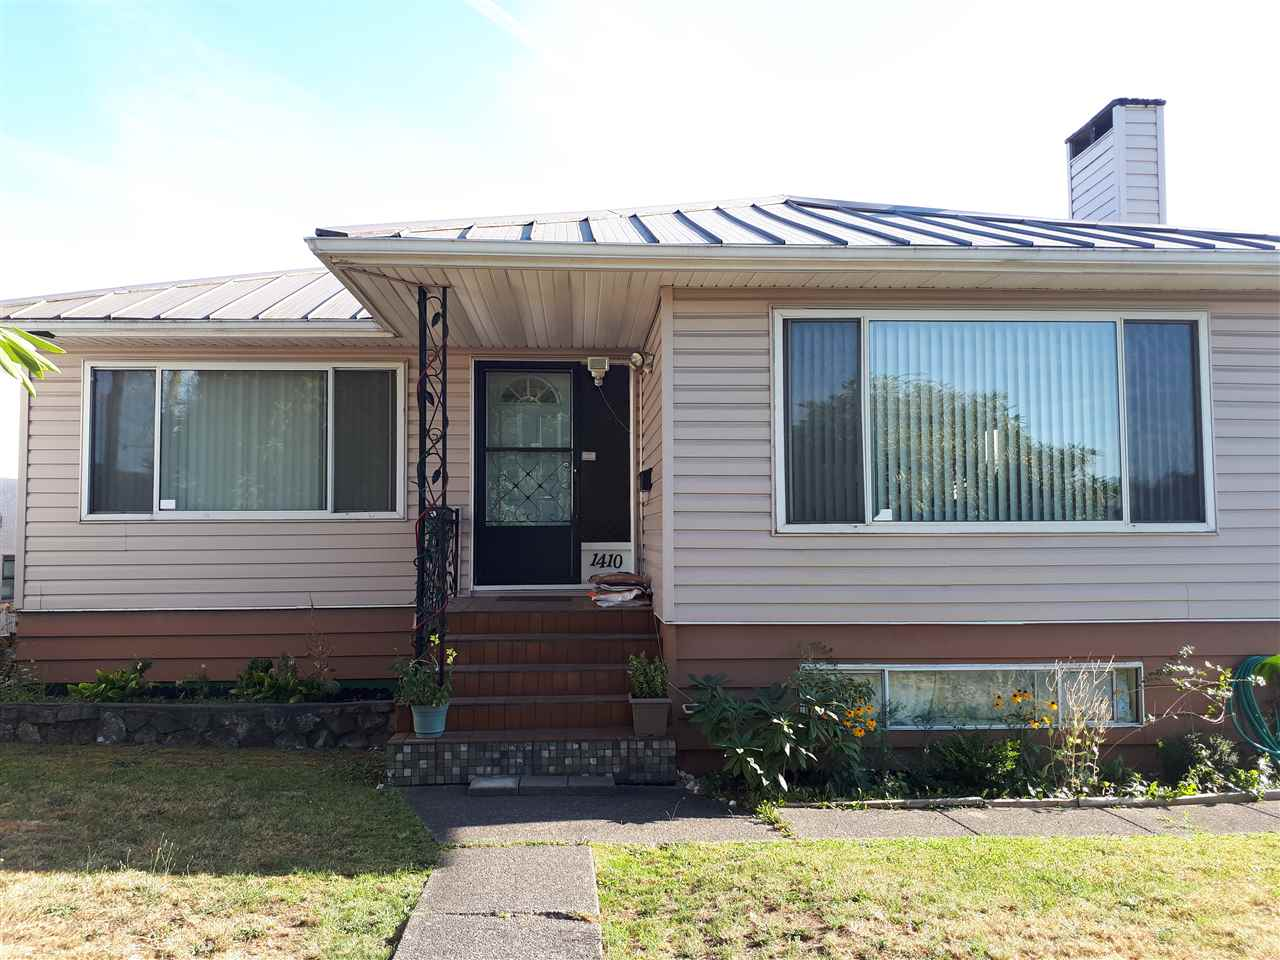 Builder alert! Big 5067 sq/ft lot with back lane. Very solid, spacious house with full basement. Hardwood floor on main/new laminate in basement. Metal roof. Central location, close to everything.